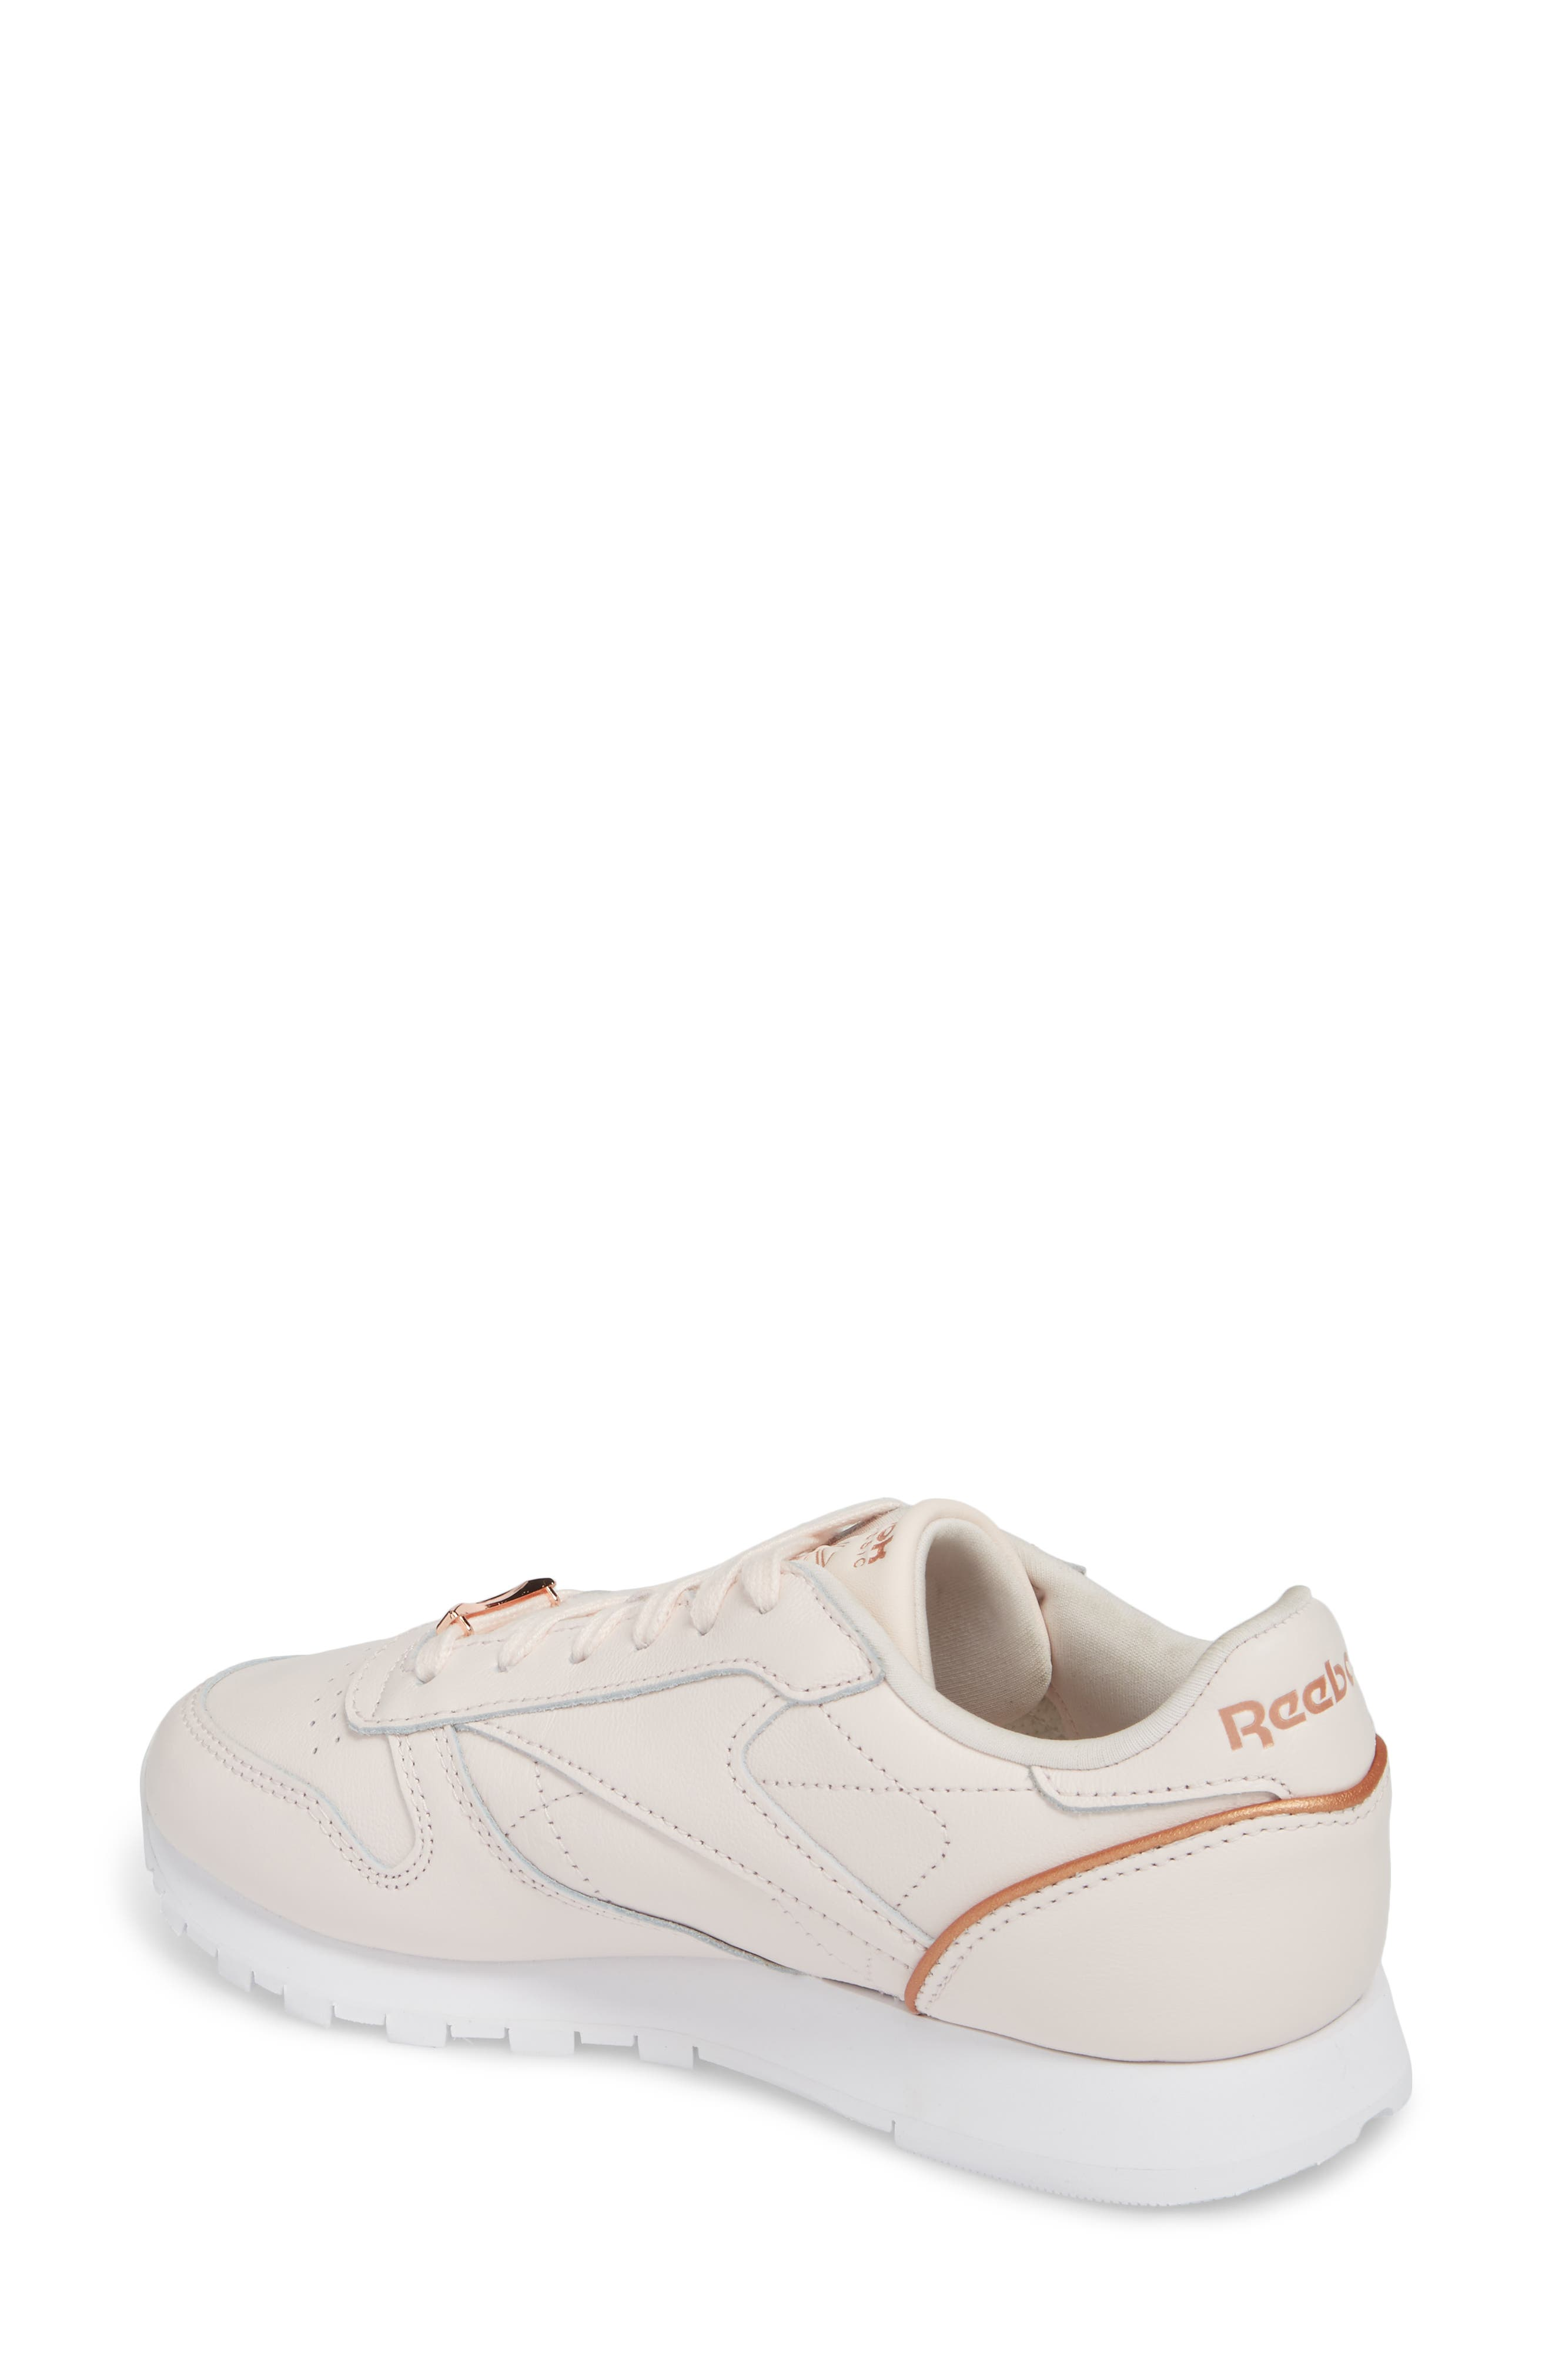 Classic Leather HW Sneaker,                             Alternate thumbnail 2, color,                             Pale Pink/ White/ Rose Gold